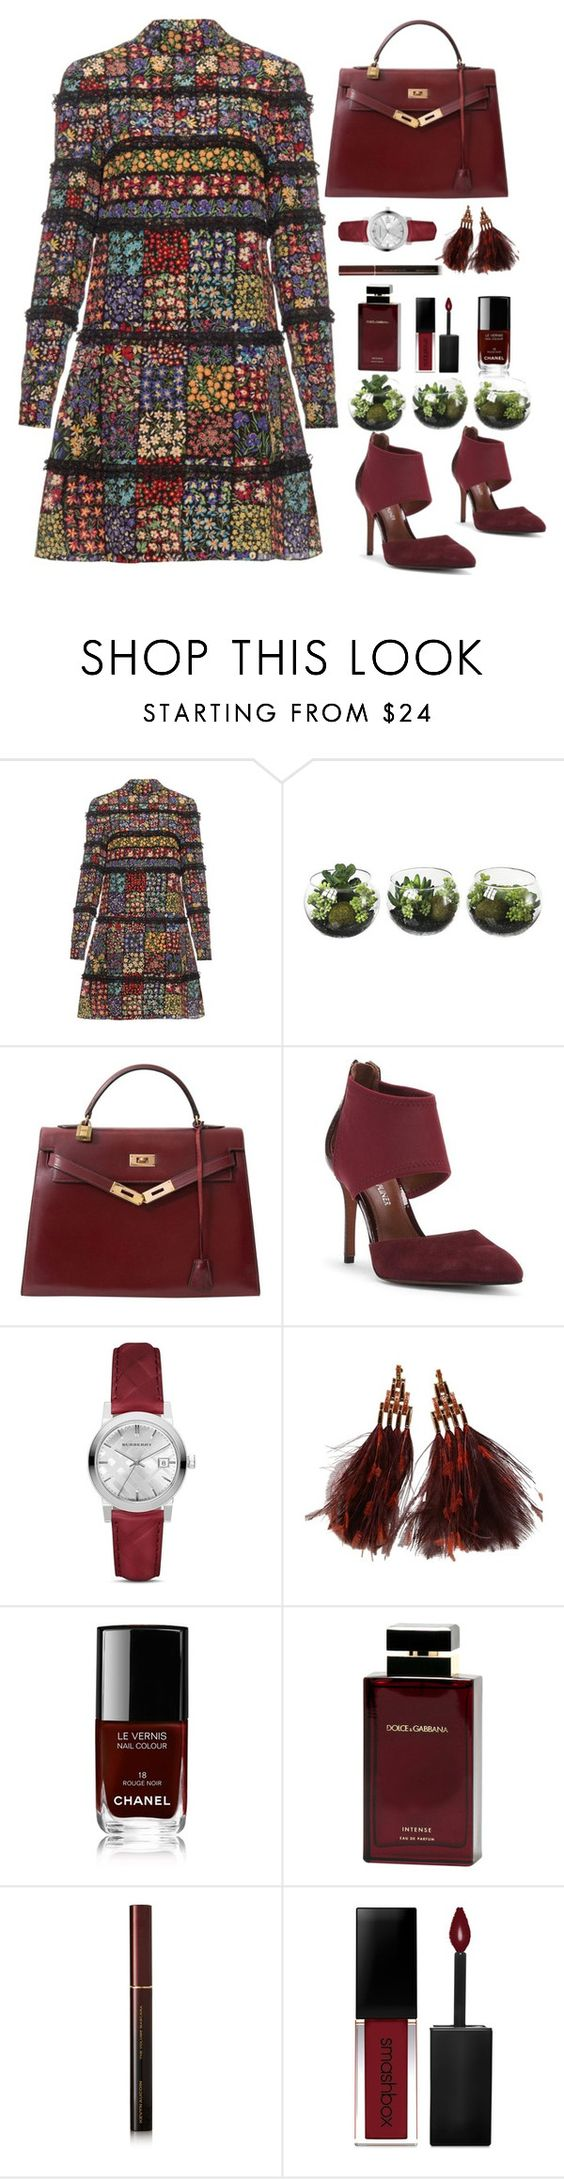 """Untitled #450"" by jovana-p-com ❤ liked on Polyvore featuring Valentino, Hermès, Donald J Pliner, Burberry, Louis Vuitton, Chanel, Dolce&Gabbana, Kevyn Aucoin and Smashbox"